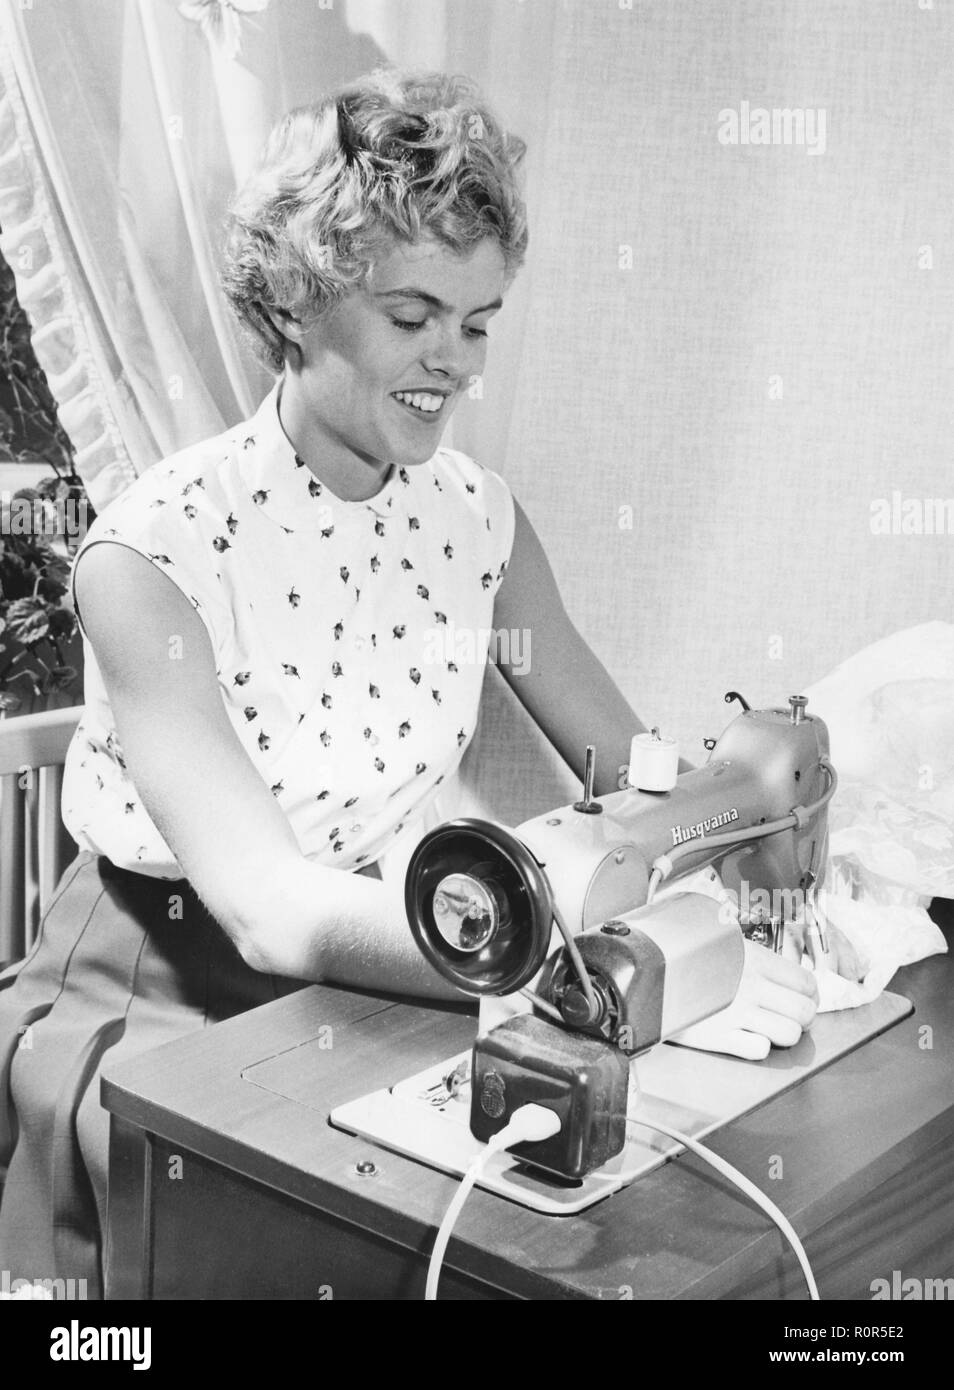 Sewing in the 1950s. Swedish female athlete and high-jump champion Inga-Britt Lorentzon at her sewing machine, a swedish model from manufacturer Husqvarna. - Stock Image